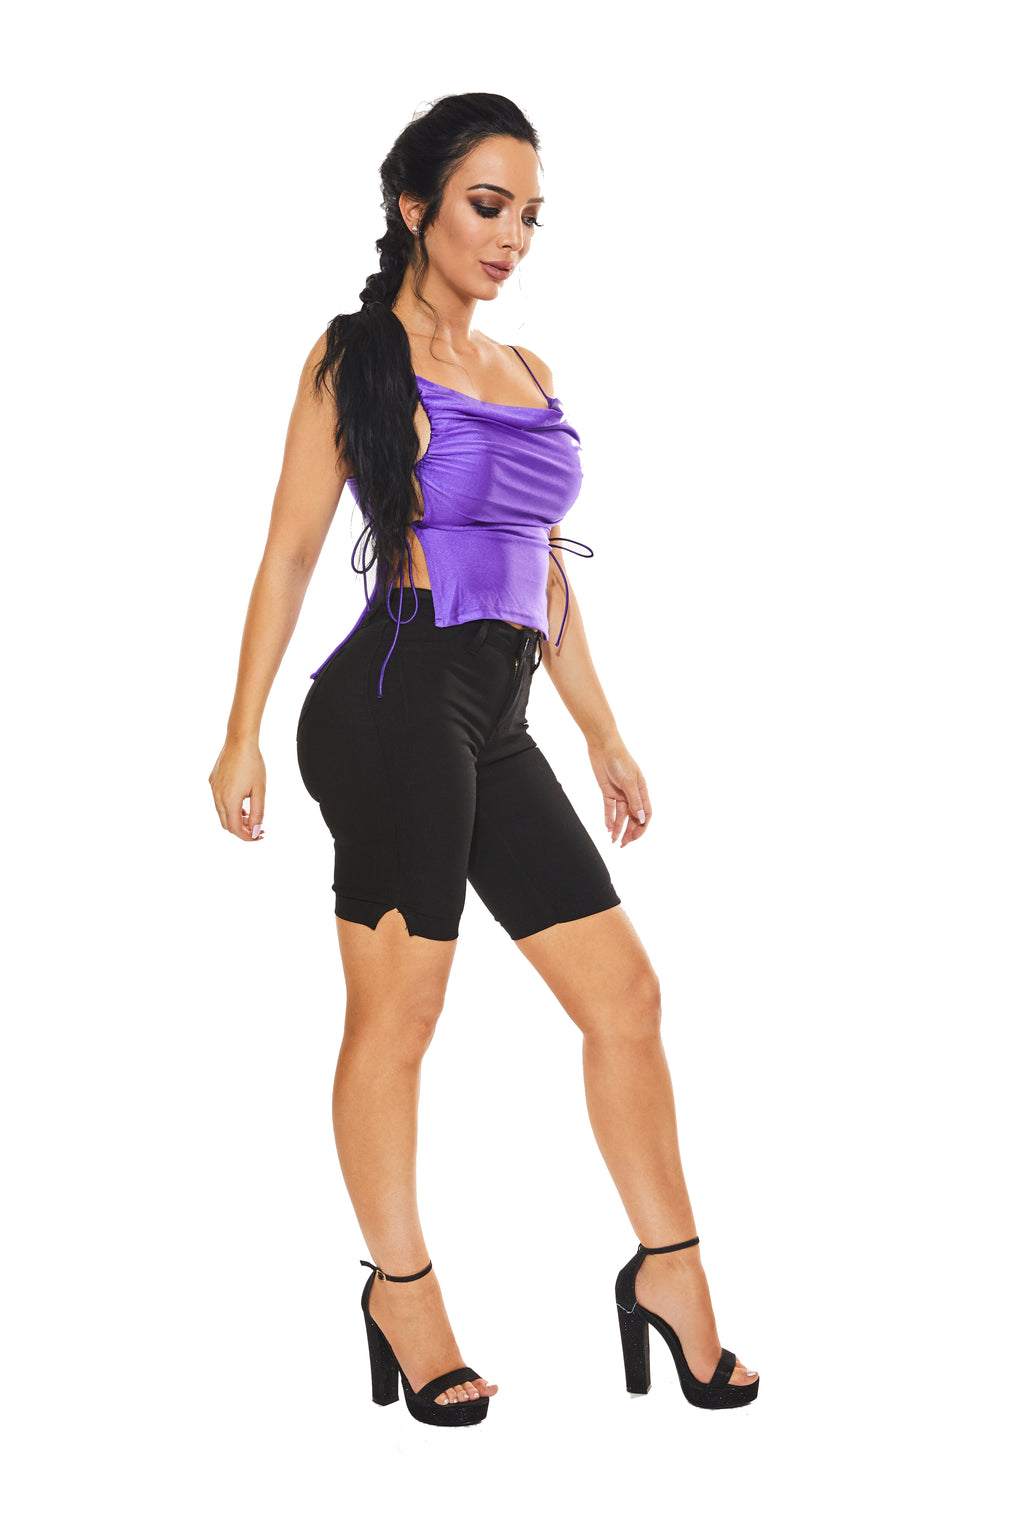 REBEL WITHOUT A CAUSE - Purple lace-up top - www.prettyboutique.com